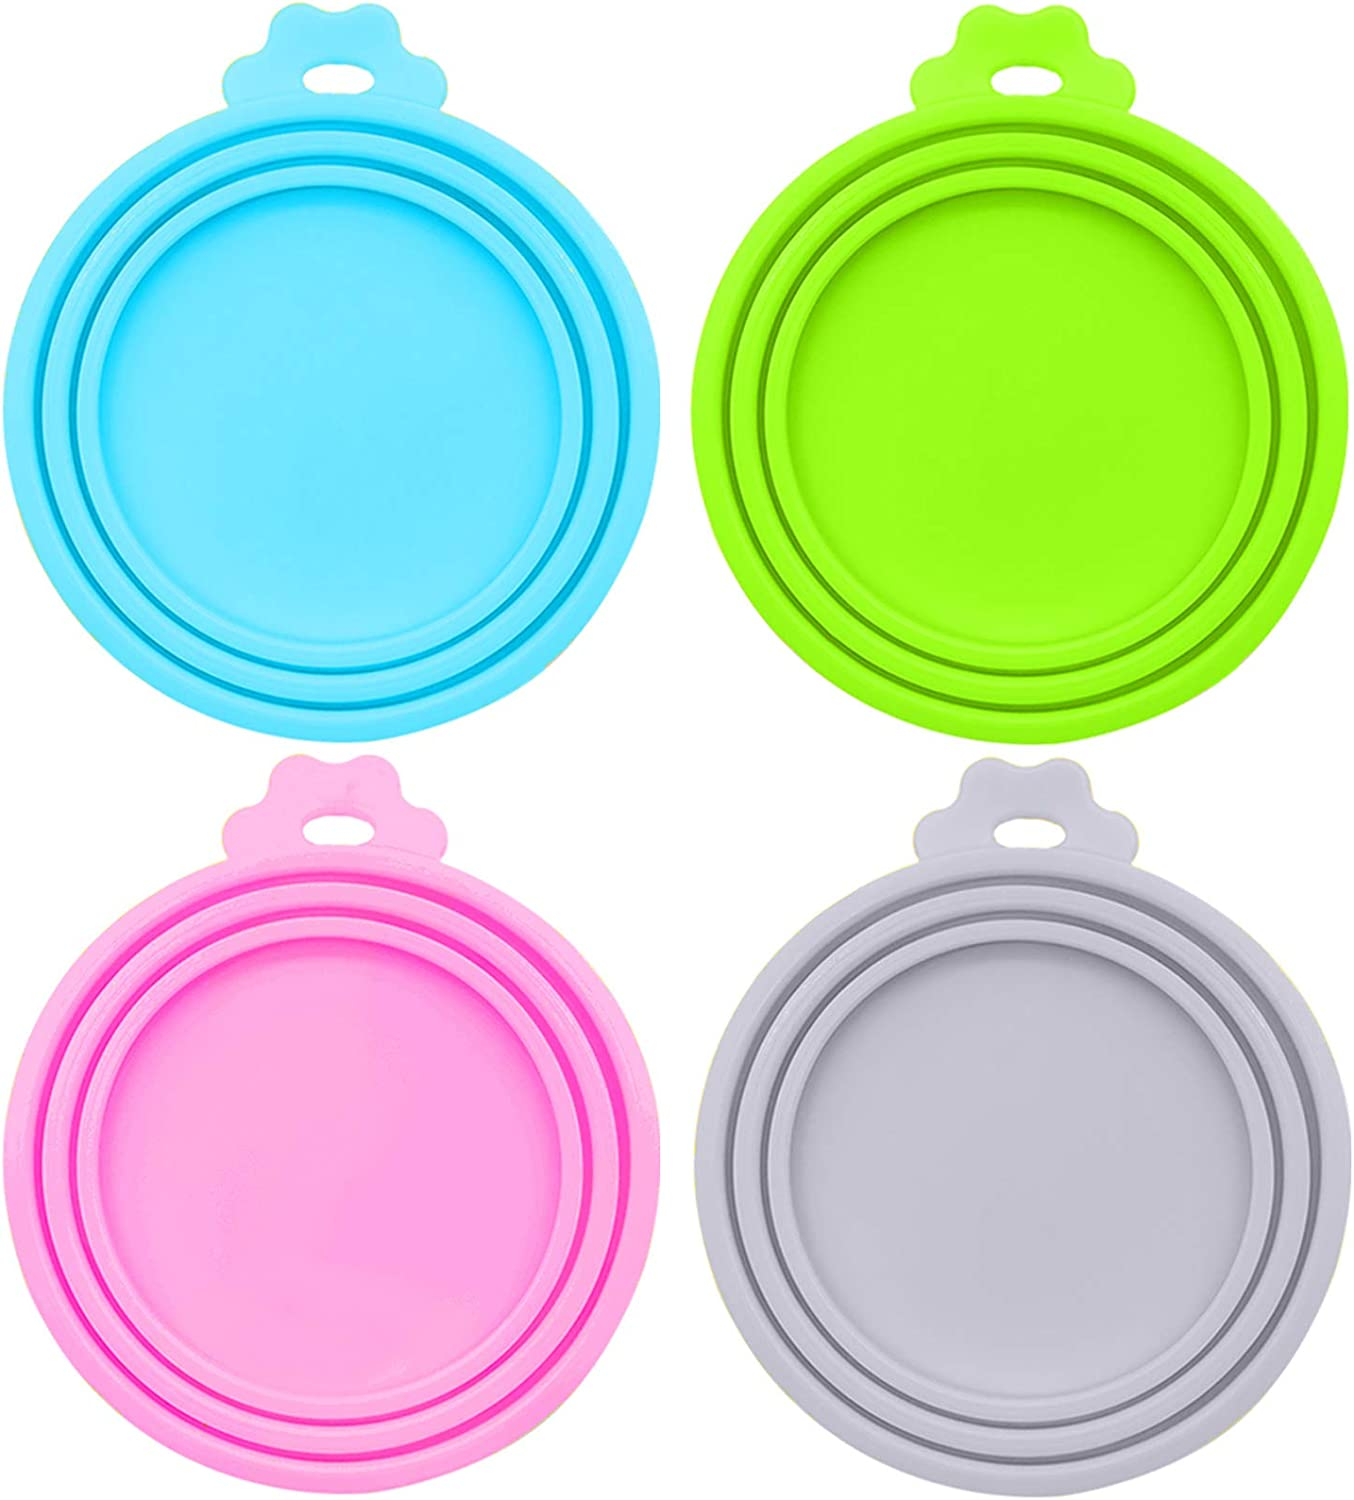 DORUI Pet Food Can Covers, Universal BPA Free Silicone Dog Cat Can Lids, Fit Most Standard Size Dog and Cat Cans